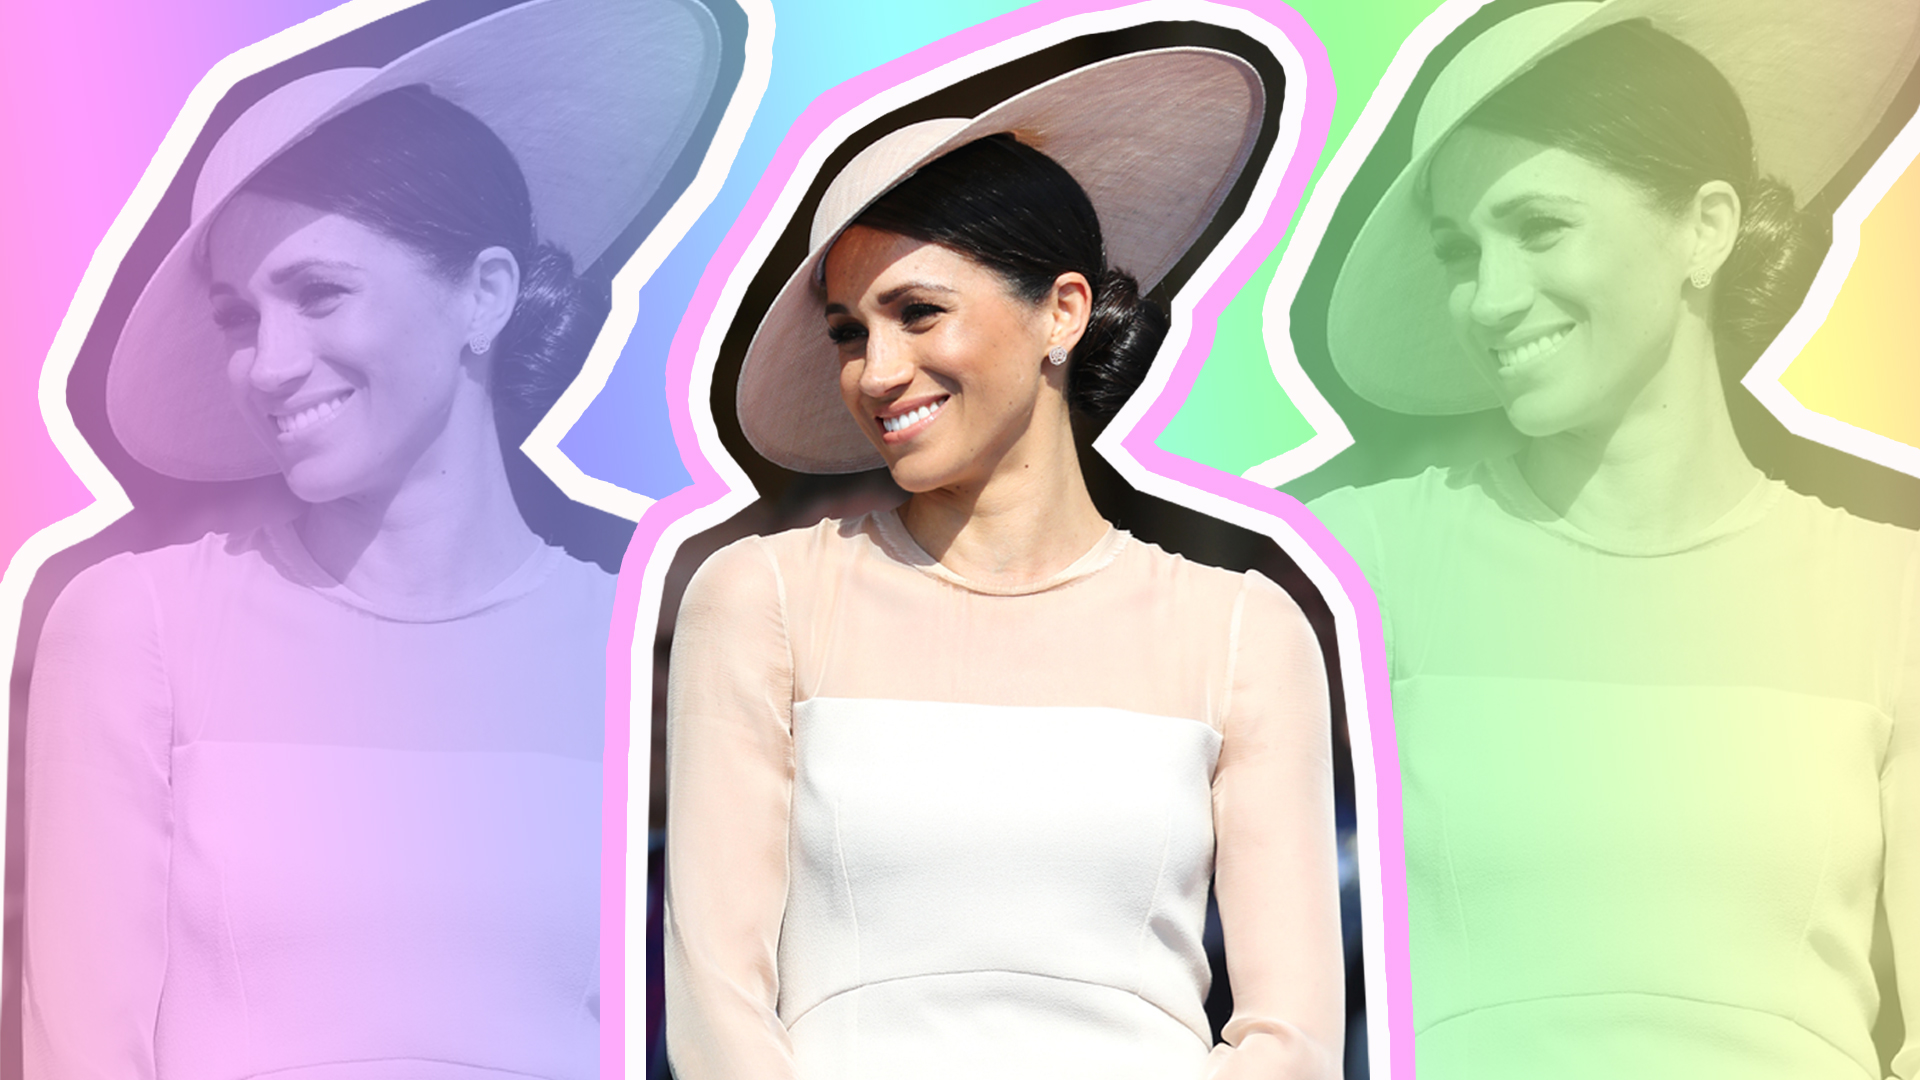 Meghan Markle's Official Royal Bio Mentions Periods—Here's Why That's Huge